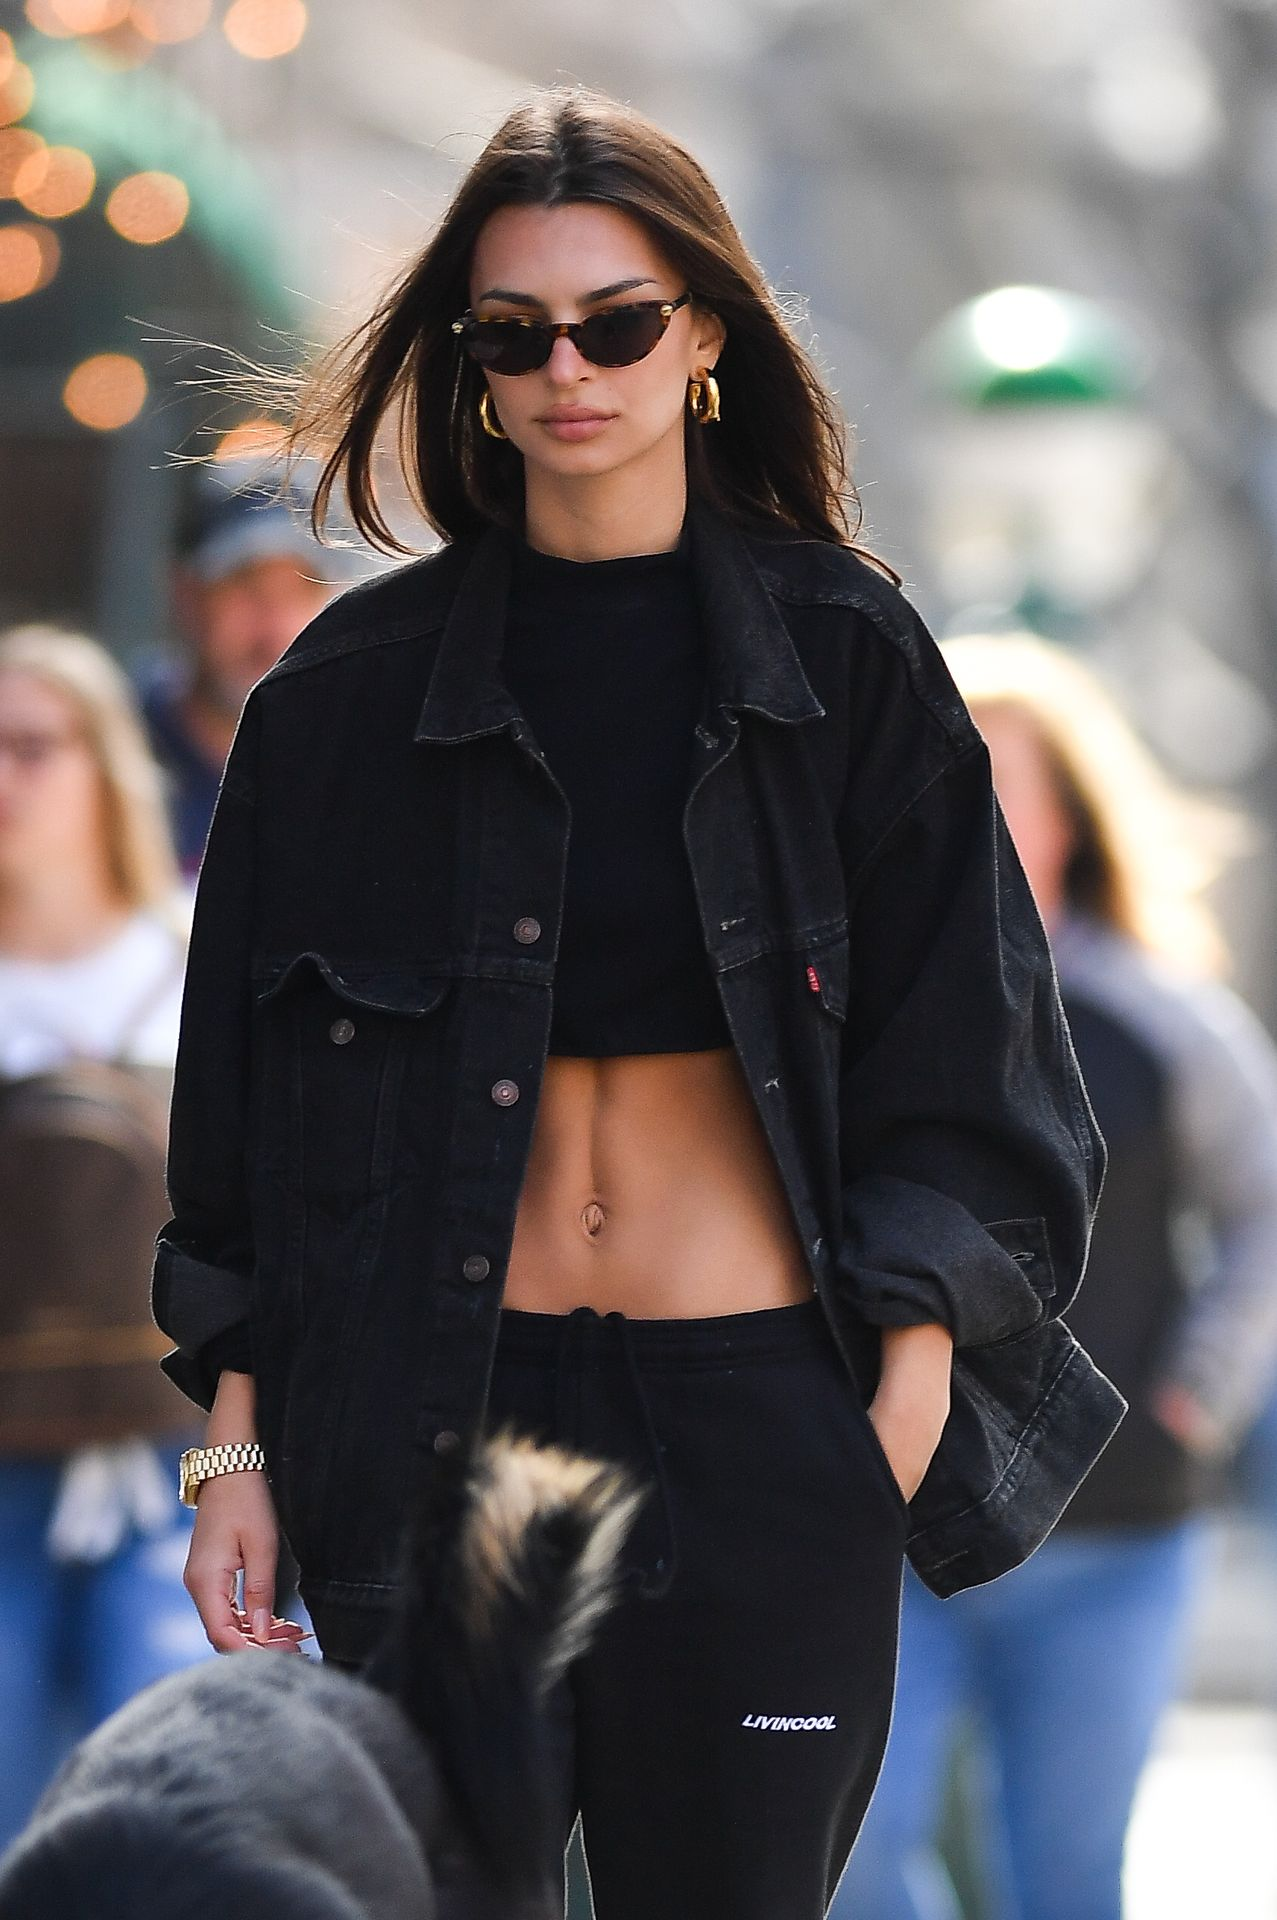 Emily Ratajkowski Walks With Her Dog Colombo In Nyc 0018